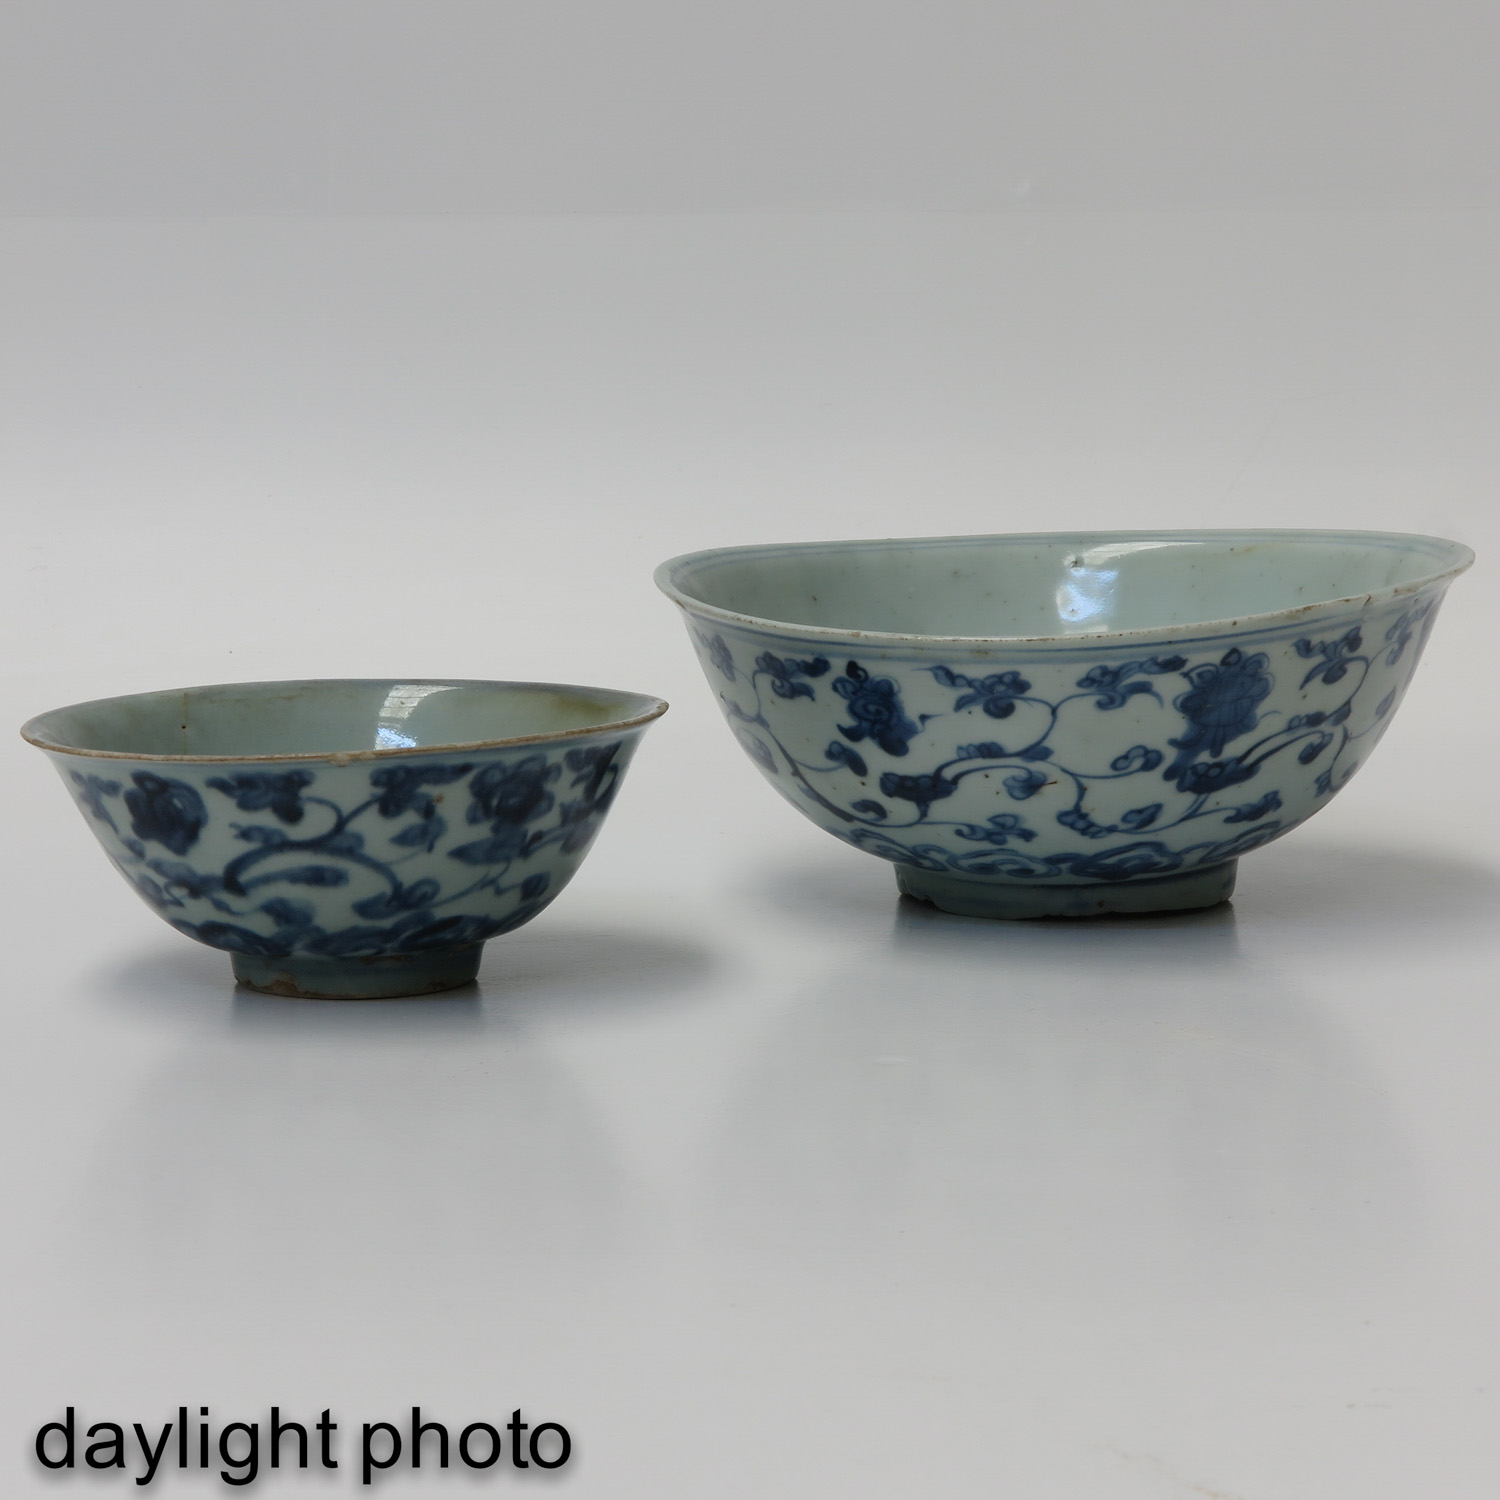 A Lot of 2 Blue and White Bowls - Image 7 of 10